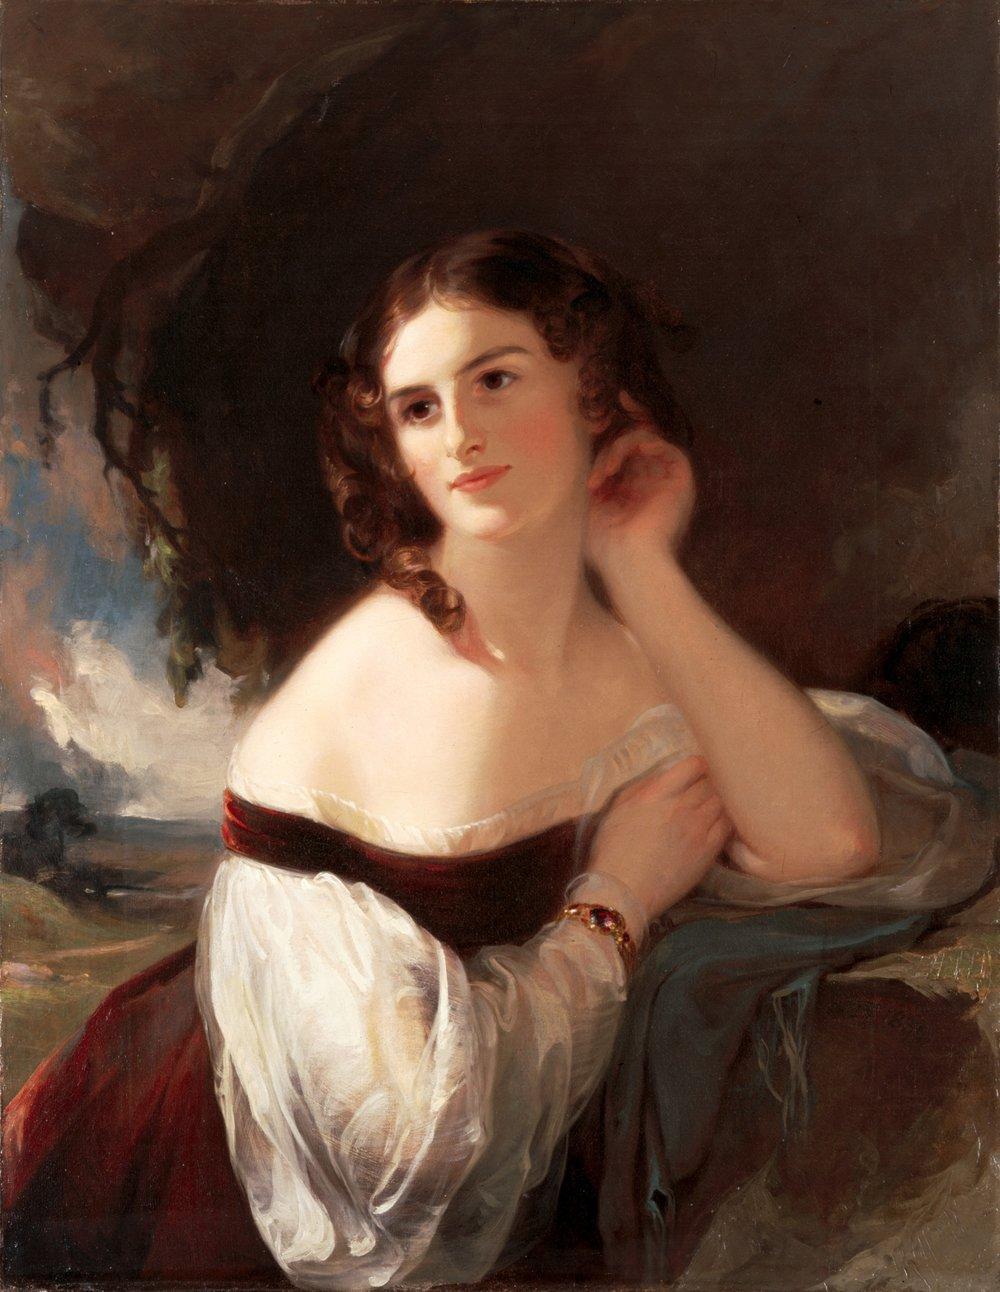 Thomas Sully, Fanny Kemble